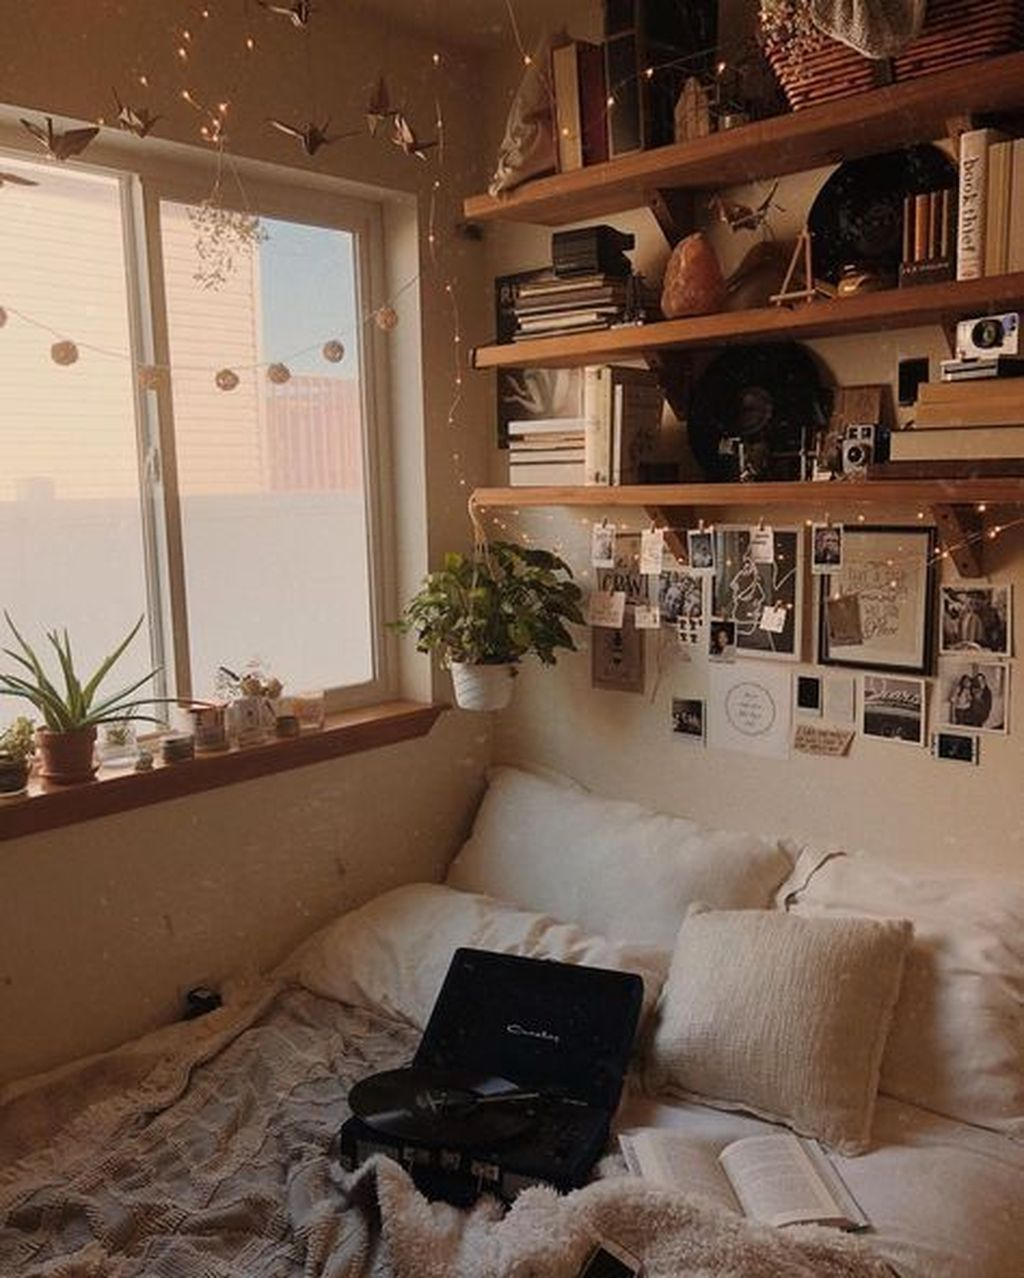 47 Charming Diy Dorm Room Decorating Ideas On A Budget - decoomo.com #roominspo